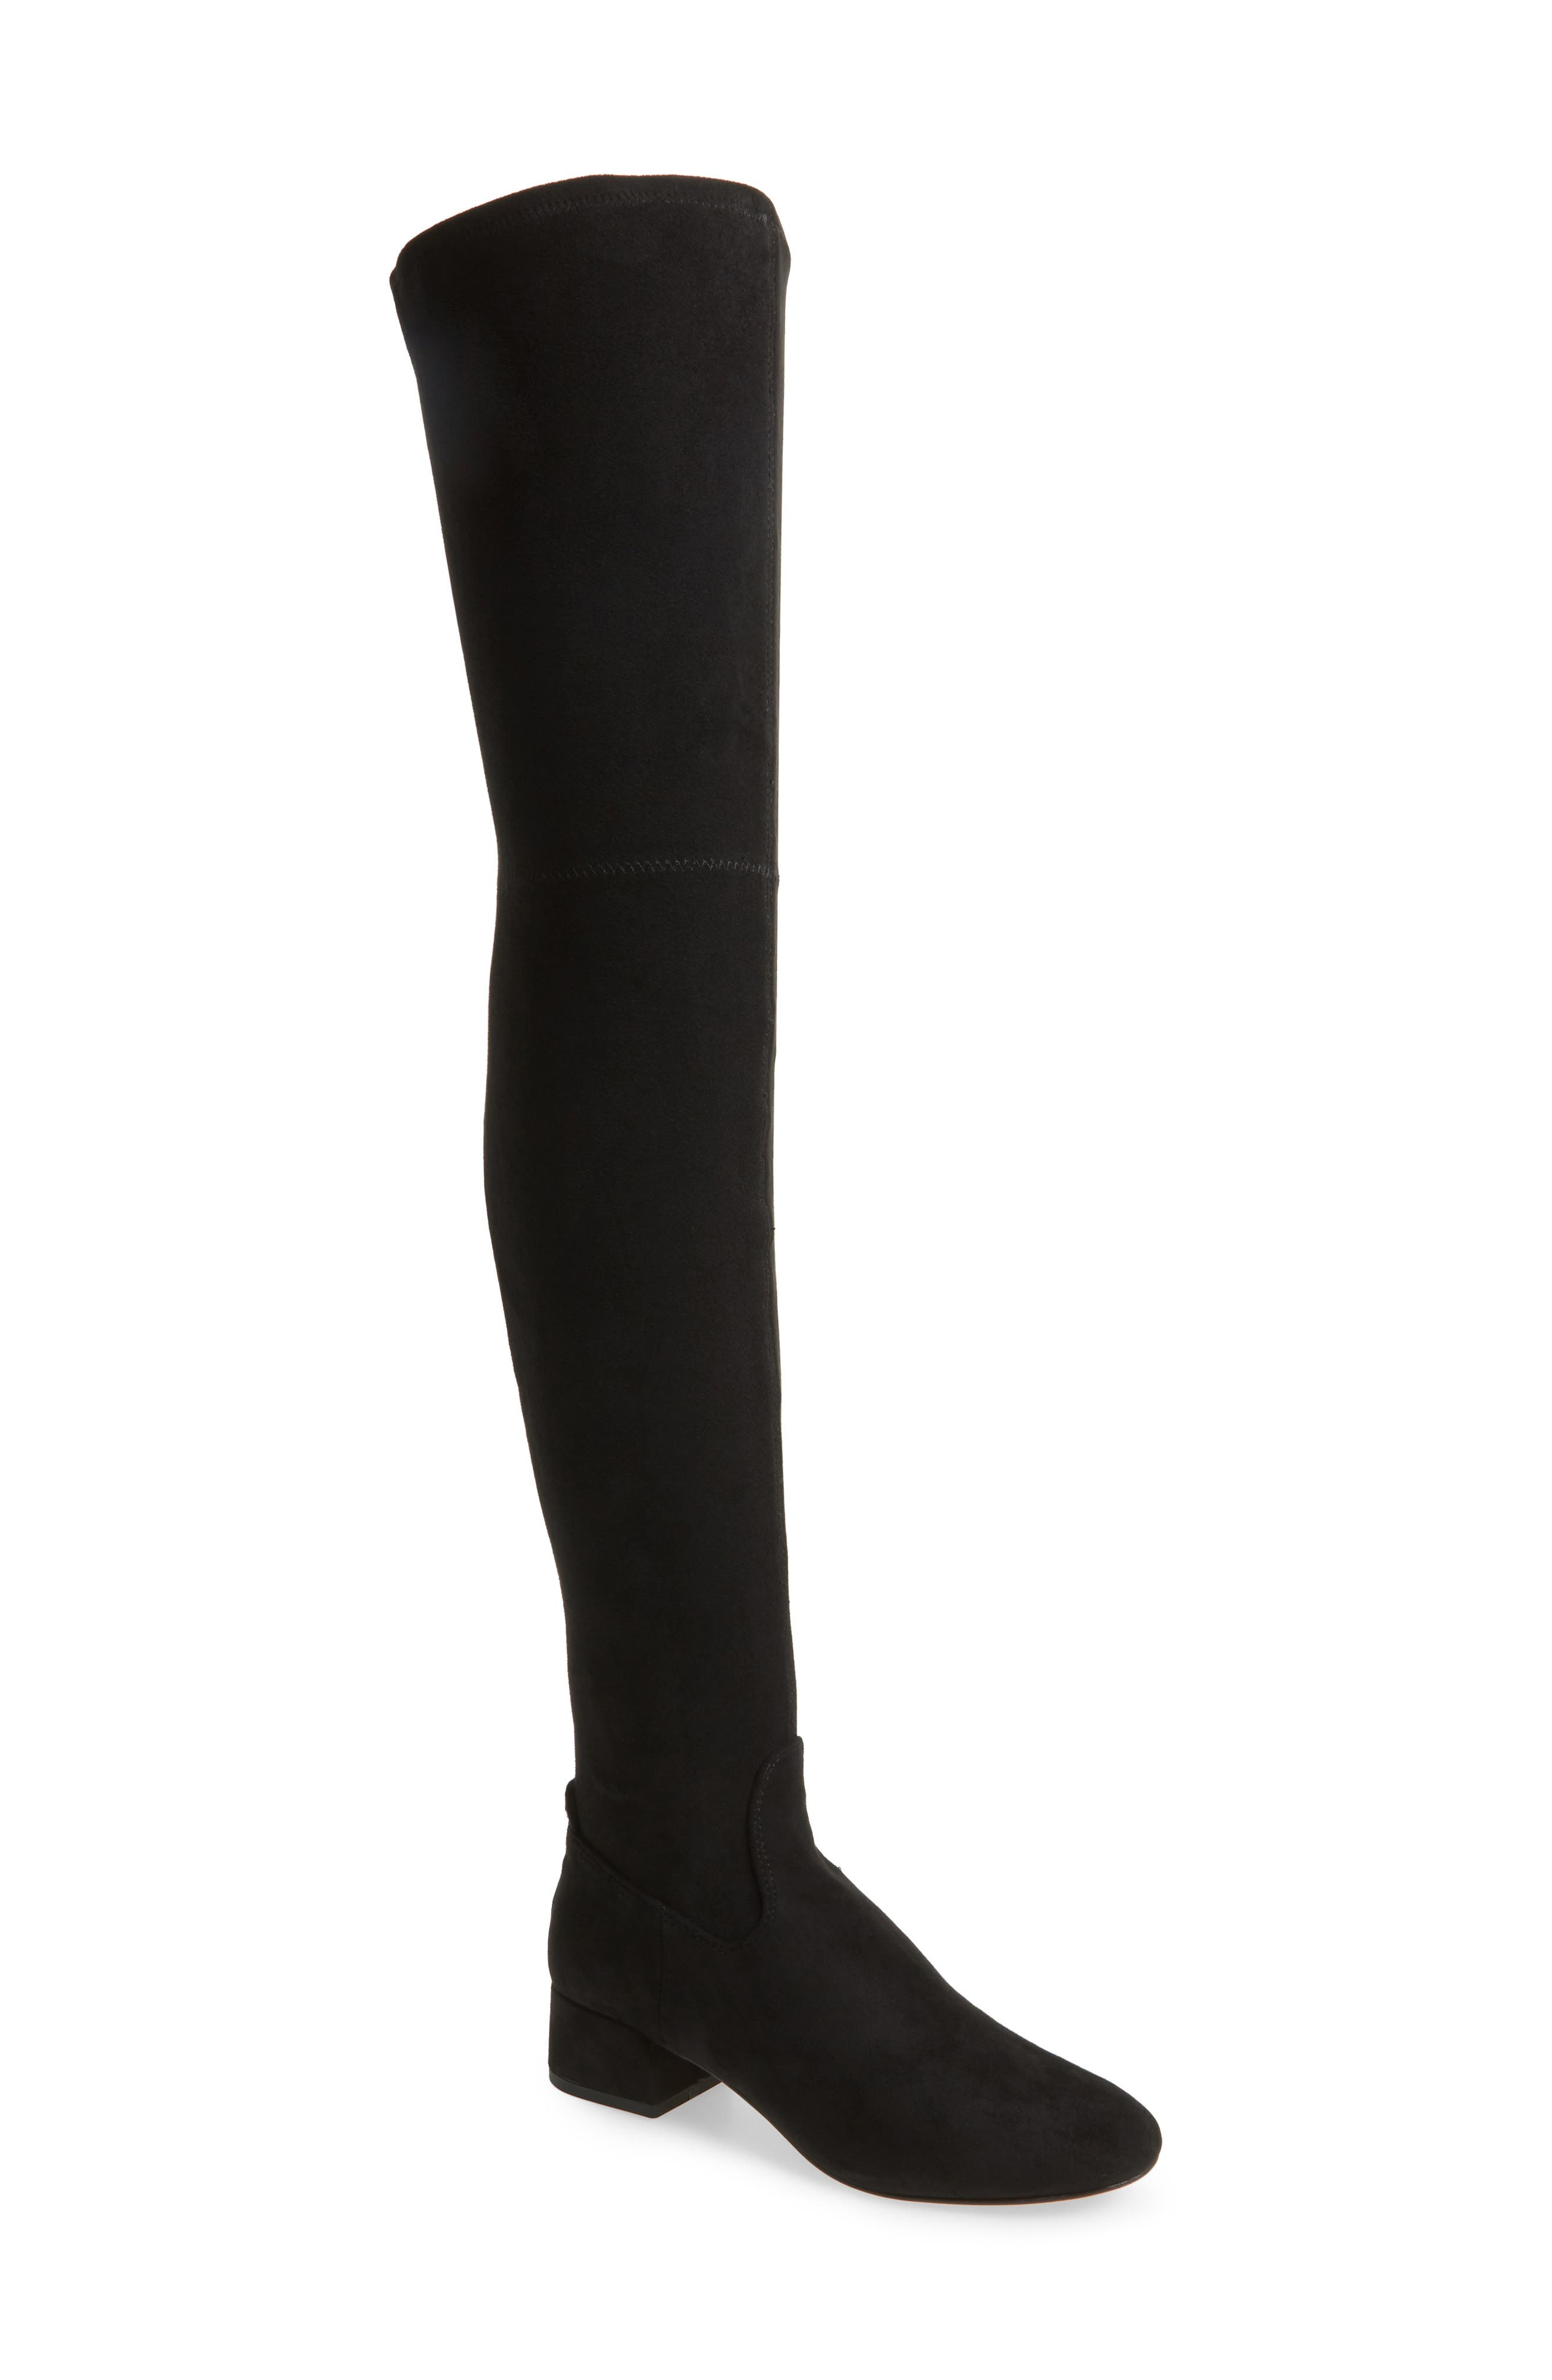 Alternate Image 1 Selected - Dolce Vita Jimmy Thigh High Boot (Women)